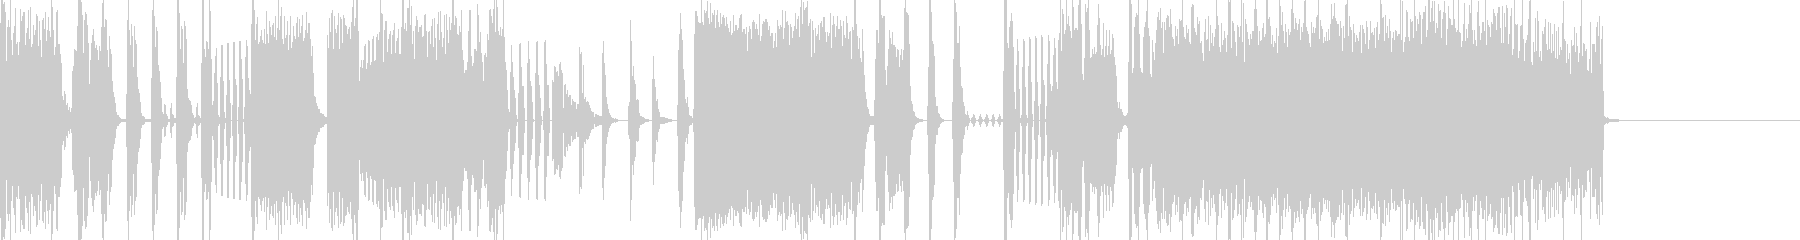 Cool beat electro jingle 2's unreproduced waveform